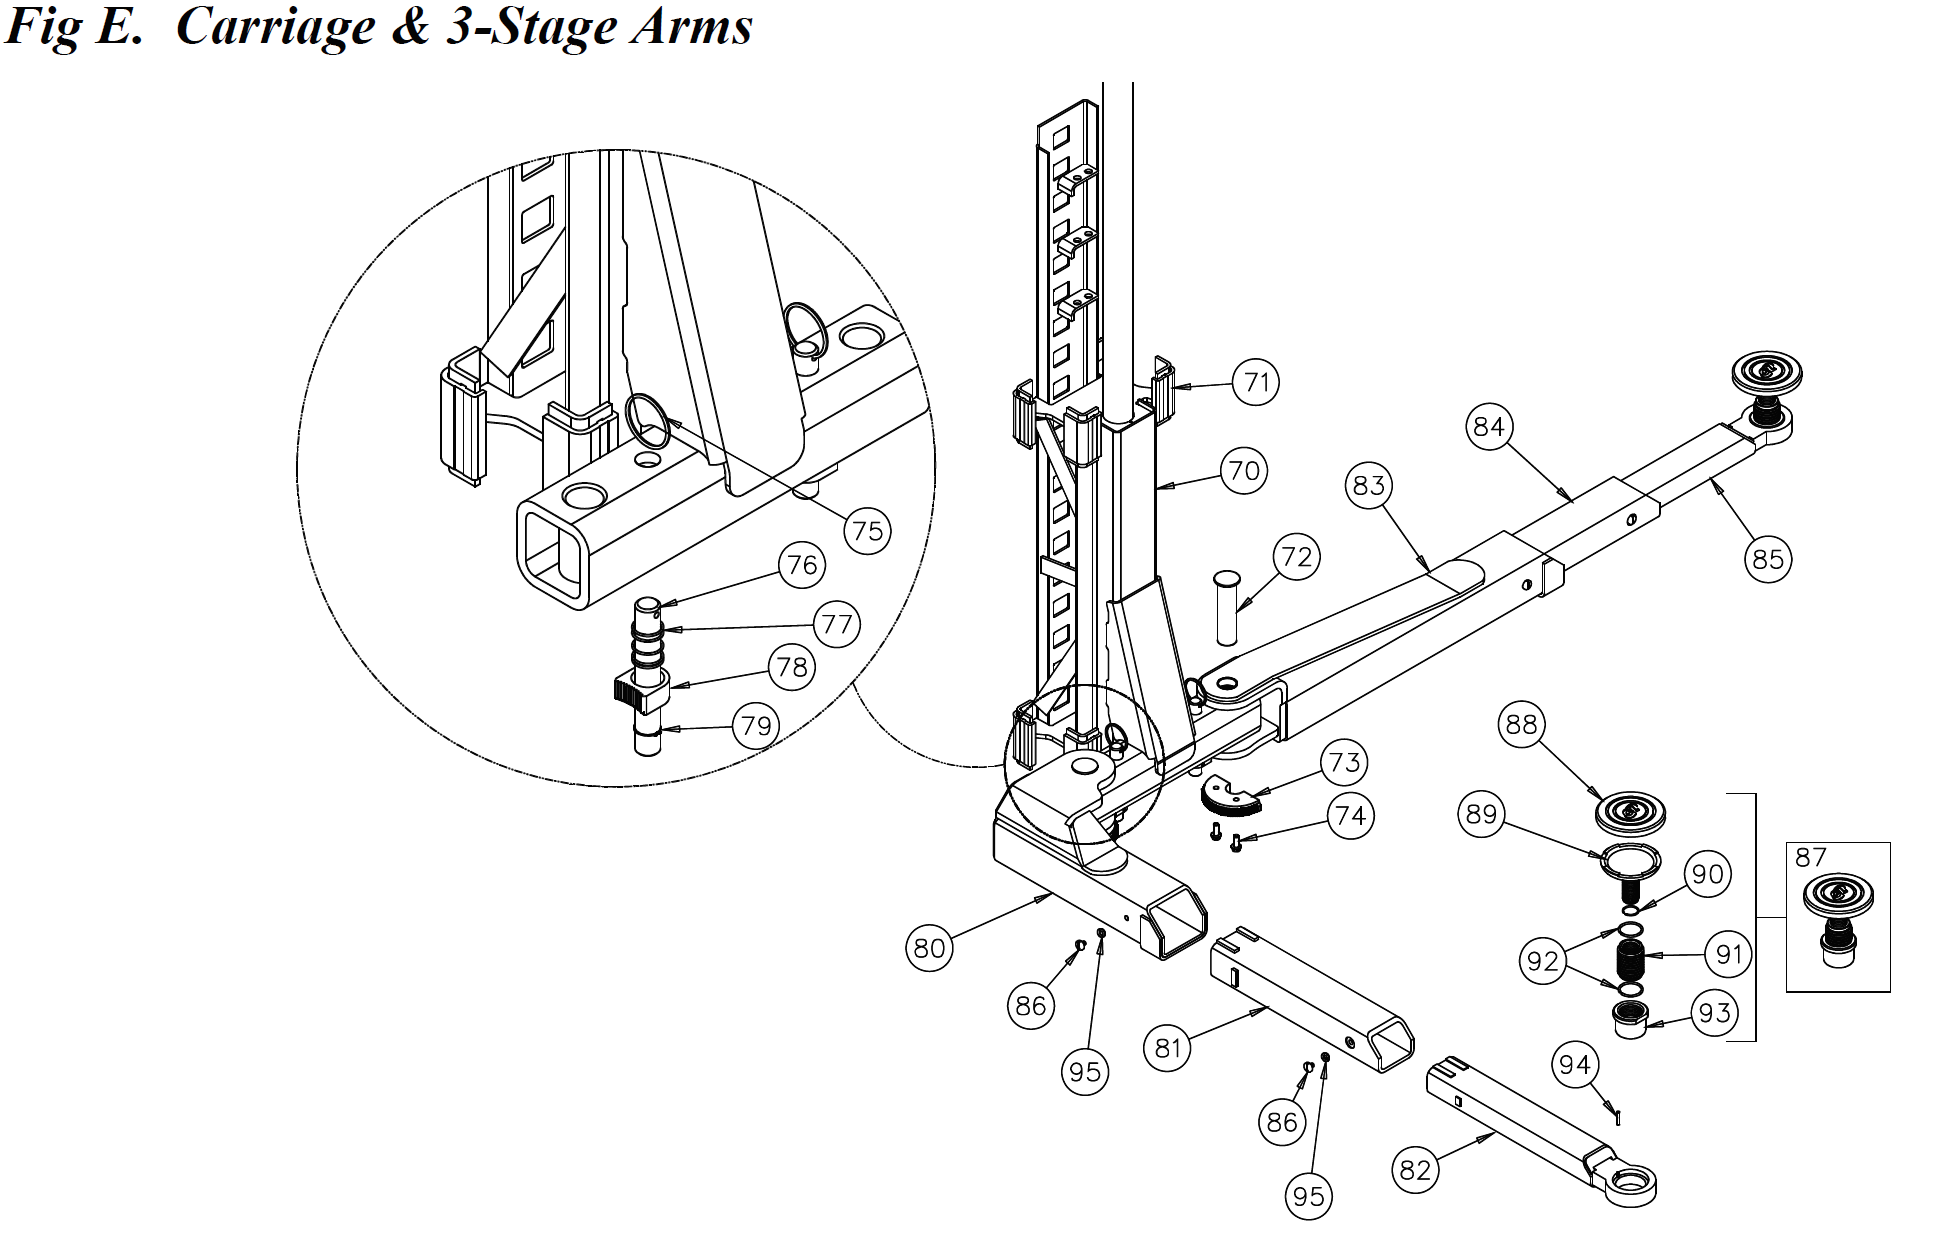 cl9-carriage-and-3-stage-arm-diagram.png